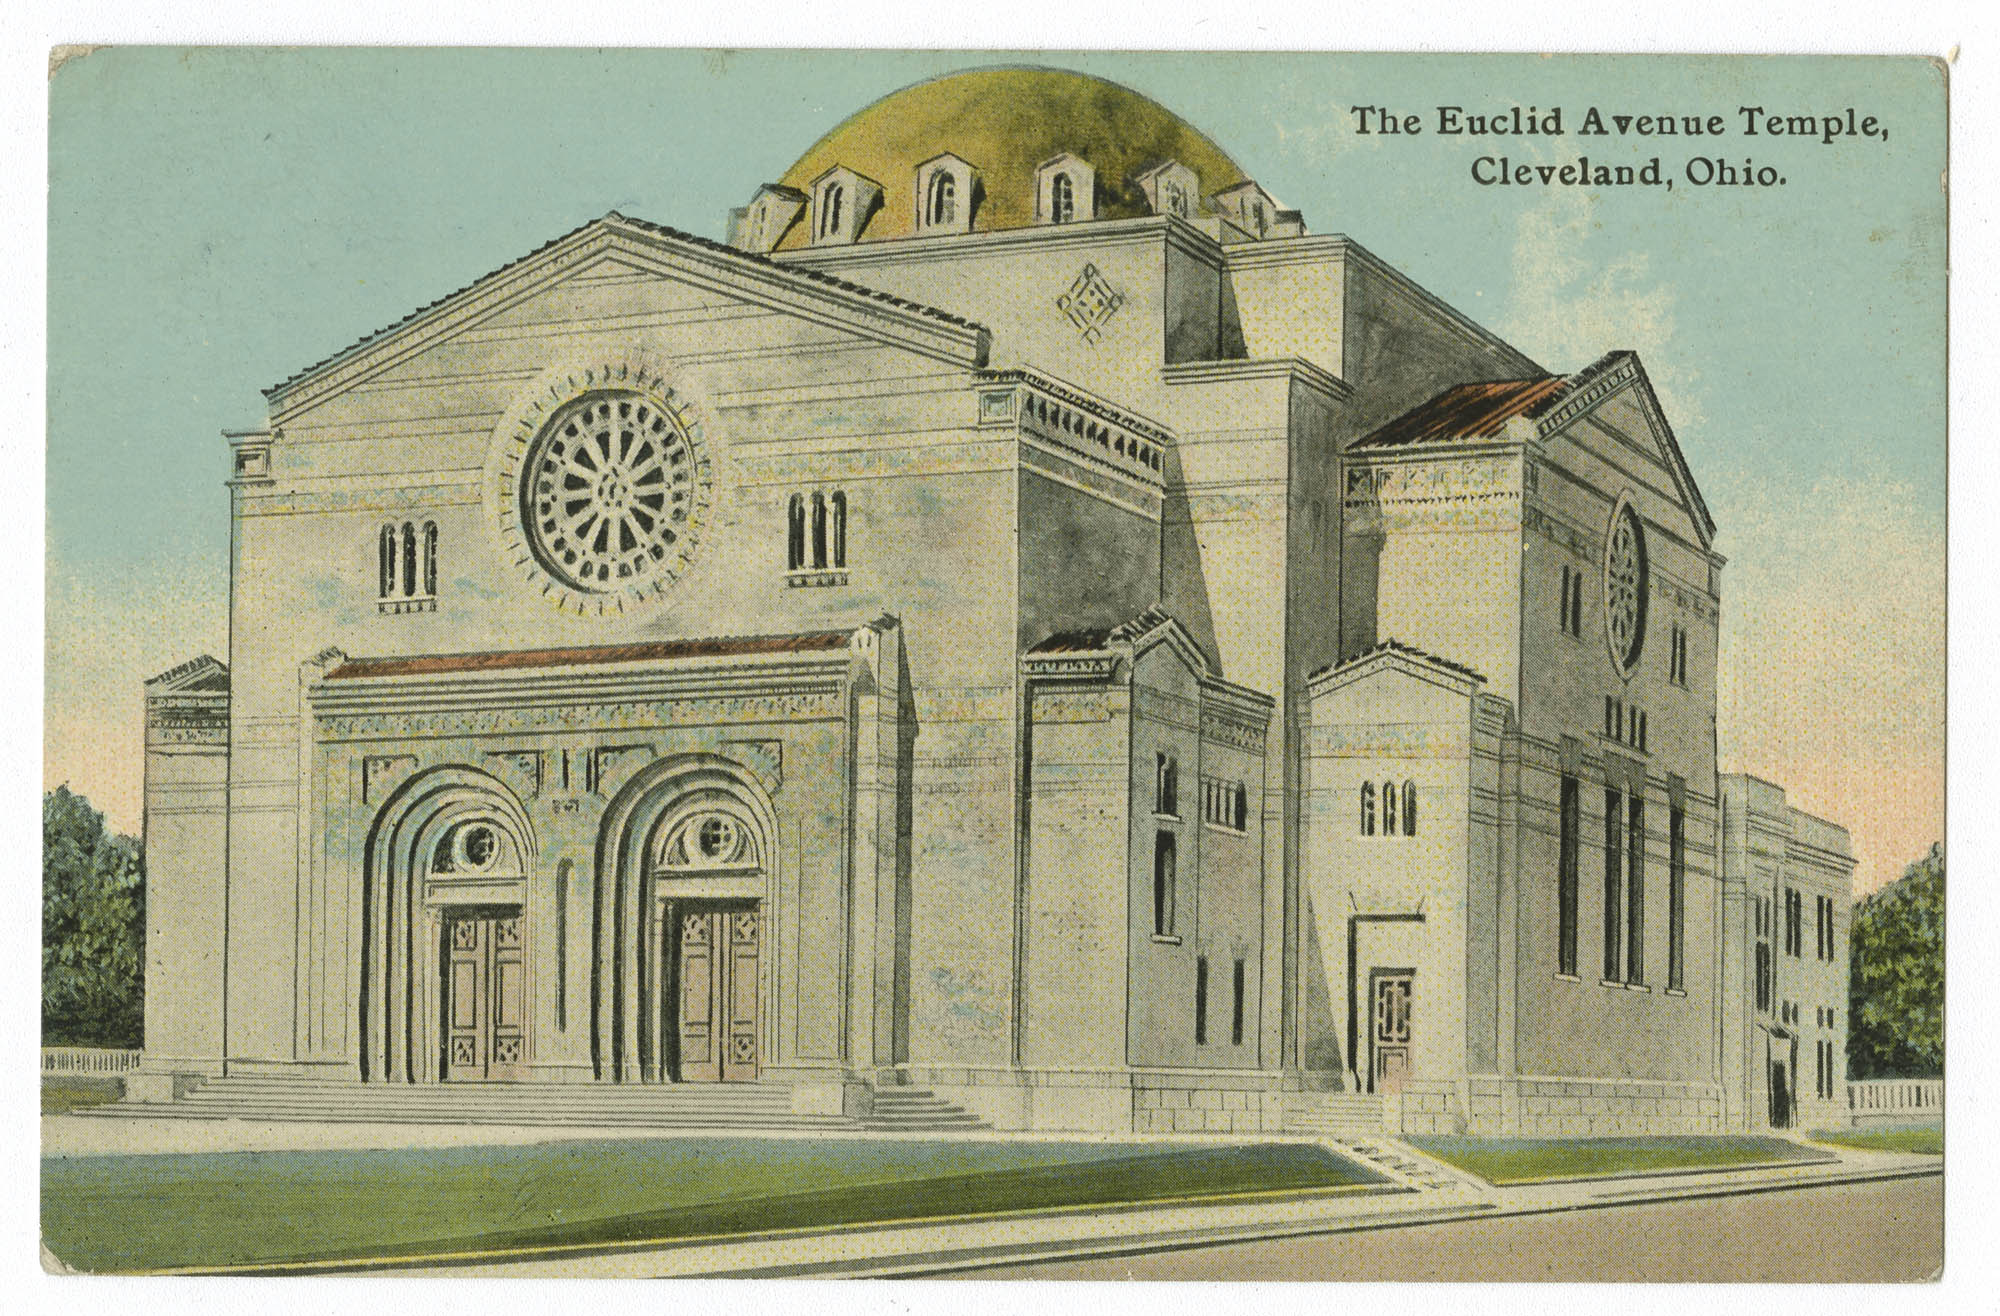 The Euclid Avenue Temple, Cleveland, Ohio